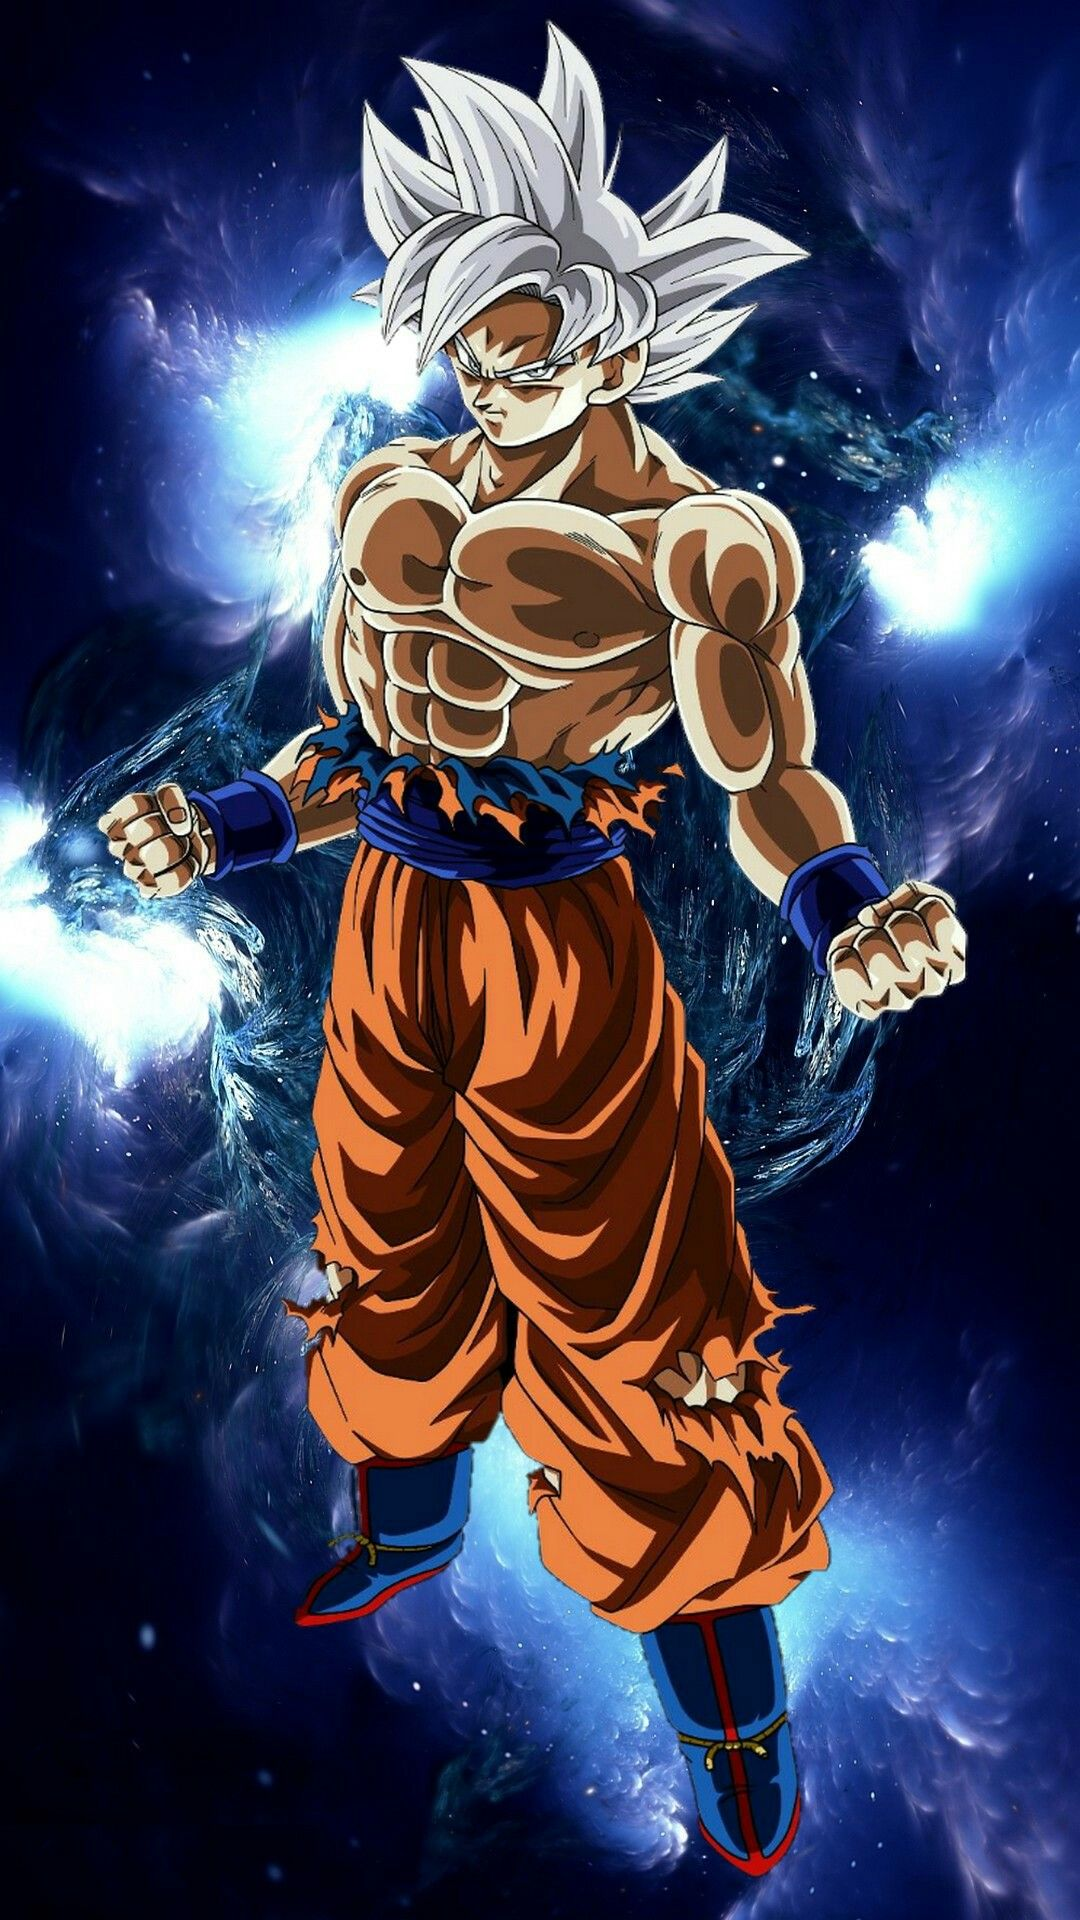 Goku Complete Ultra Instinct Download 4k Wallpapers For Smartphones